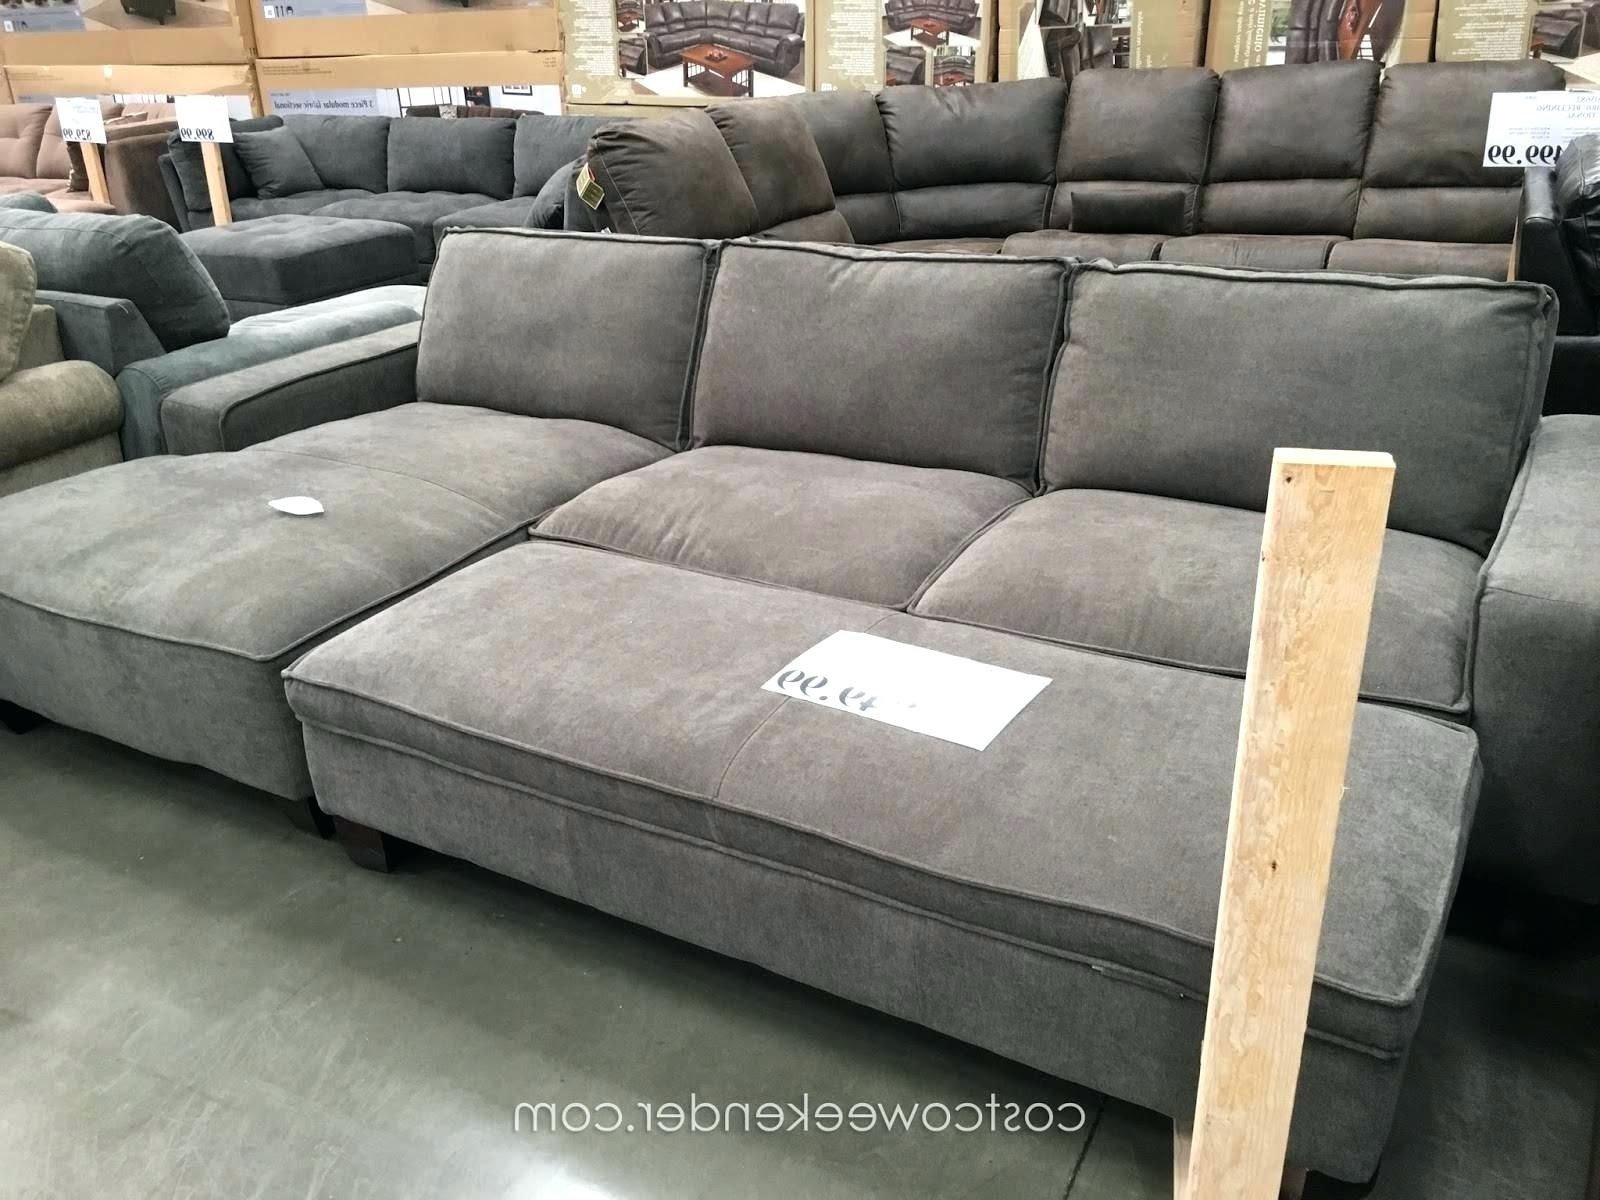 Well Liked Berkline Sofa Recliner Costco And Loveseat – Jasonatavastrealty Regarding Berkline Sofas (View 10 of 15)